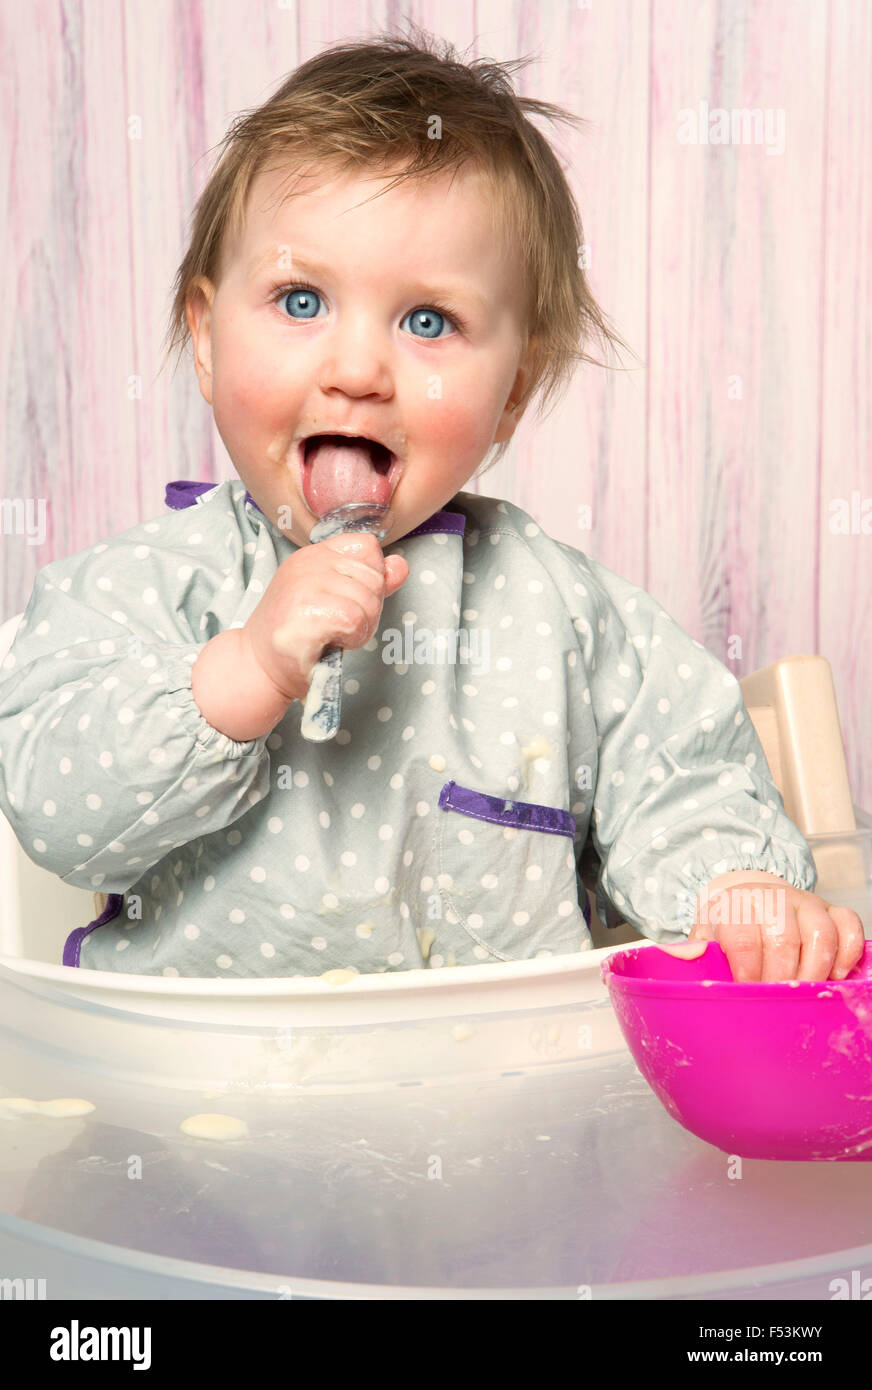 Baby, 6-12 months, mash, food, spoon, solid food, high chair, studio, portrait, - Stock Image